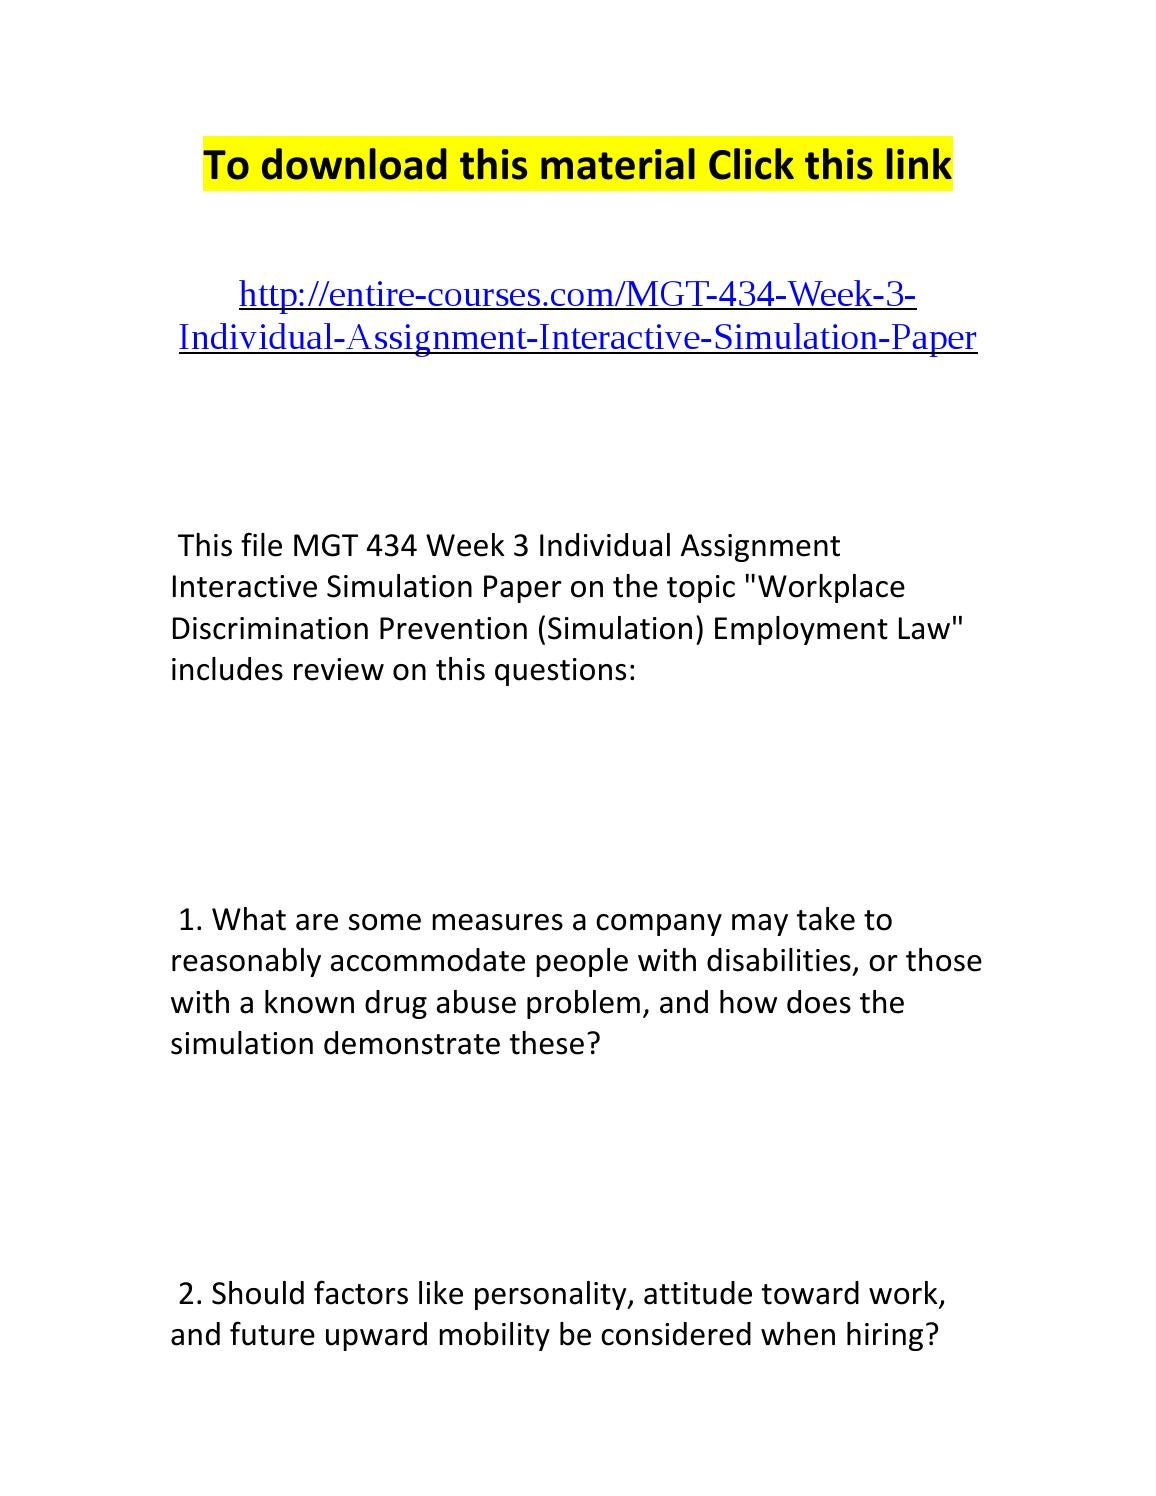 interactive simulation paper Mgt 434 week 3 individual assignment interactive simulation paper it would be in the best interest of the company to consider factors like personality.